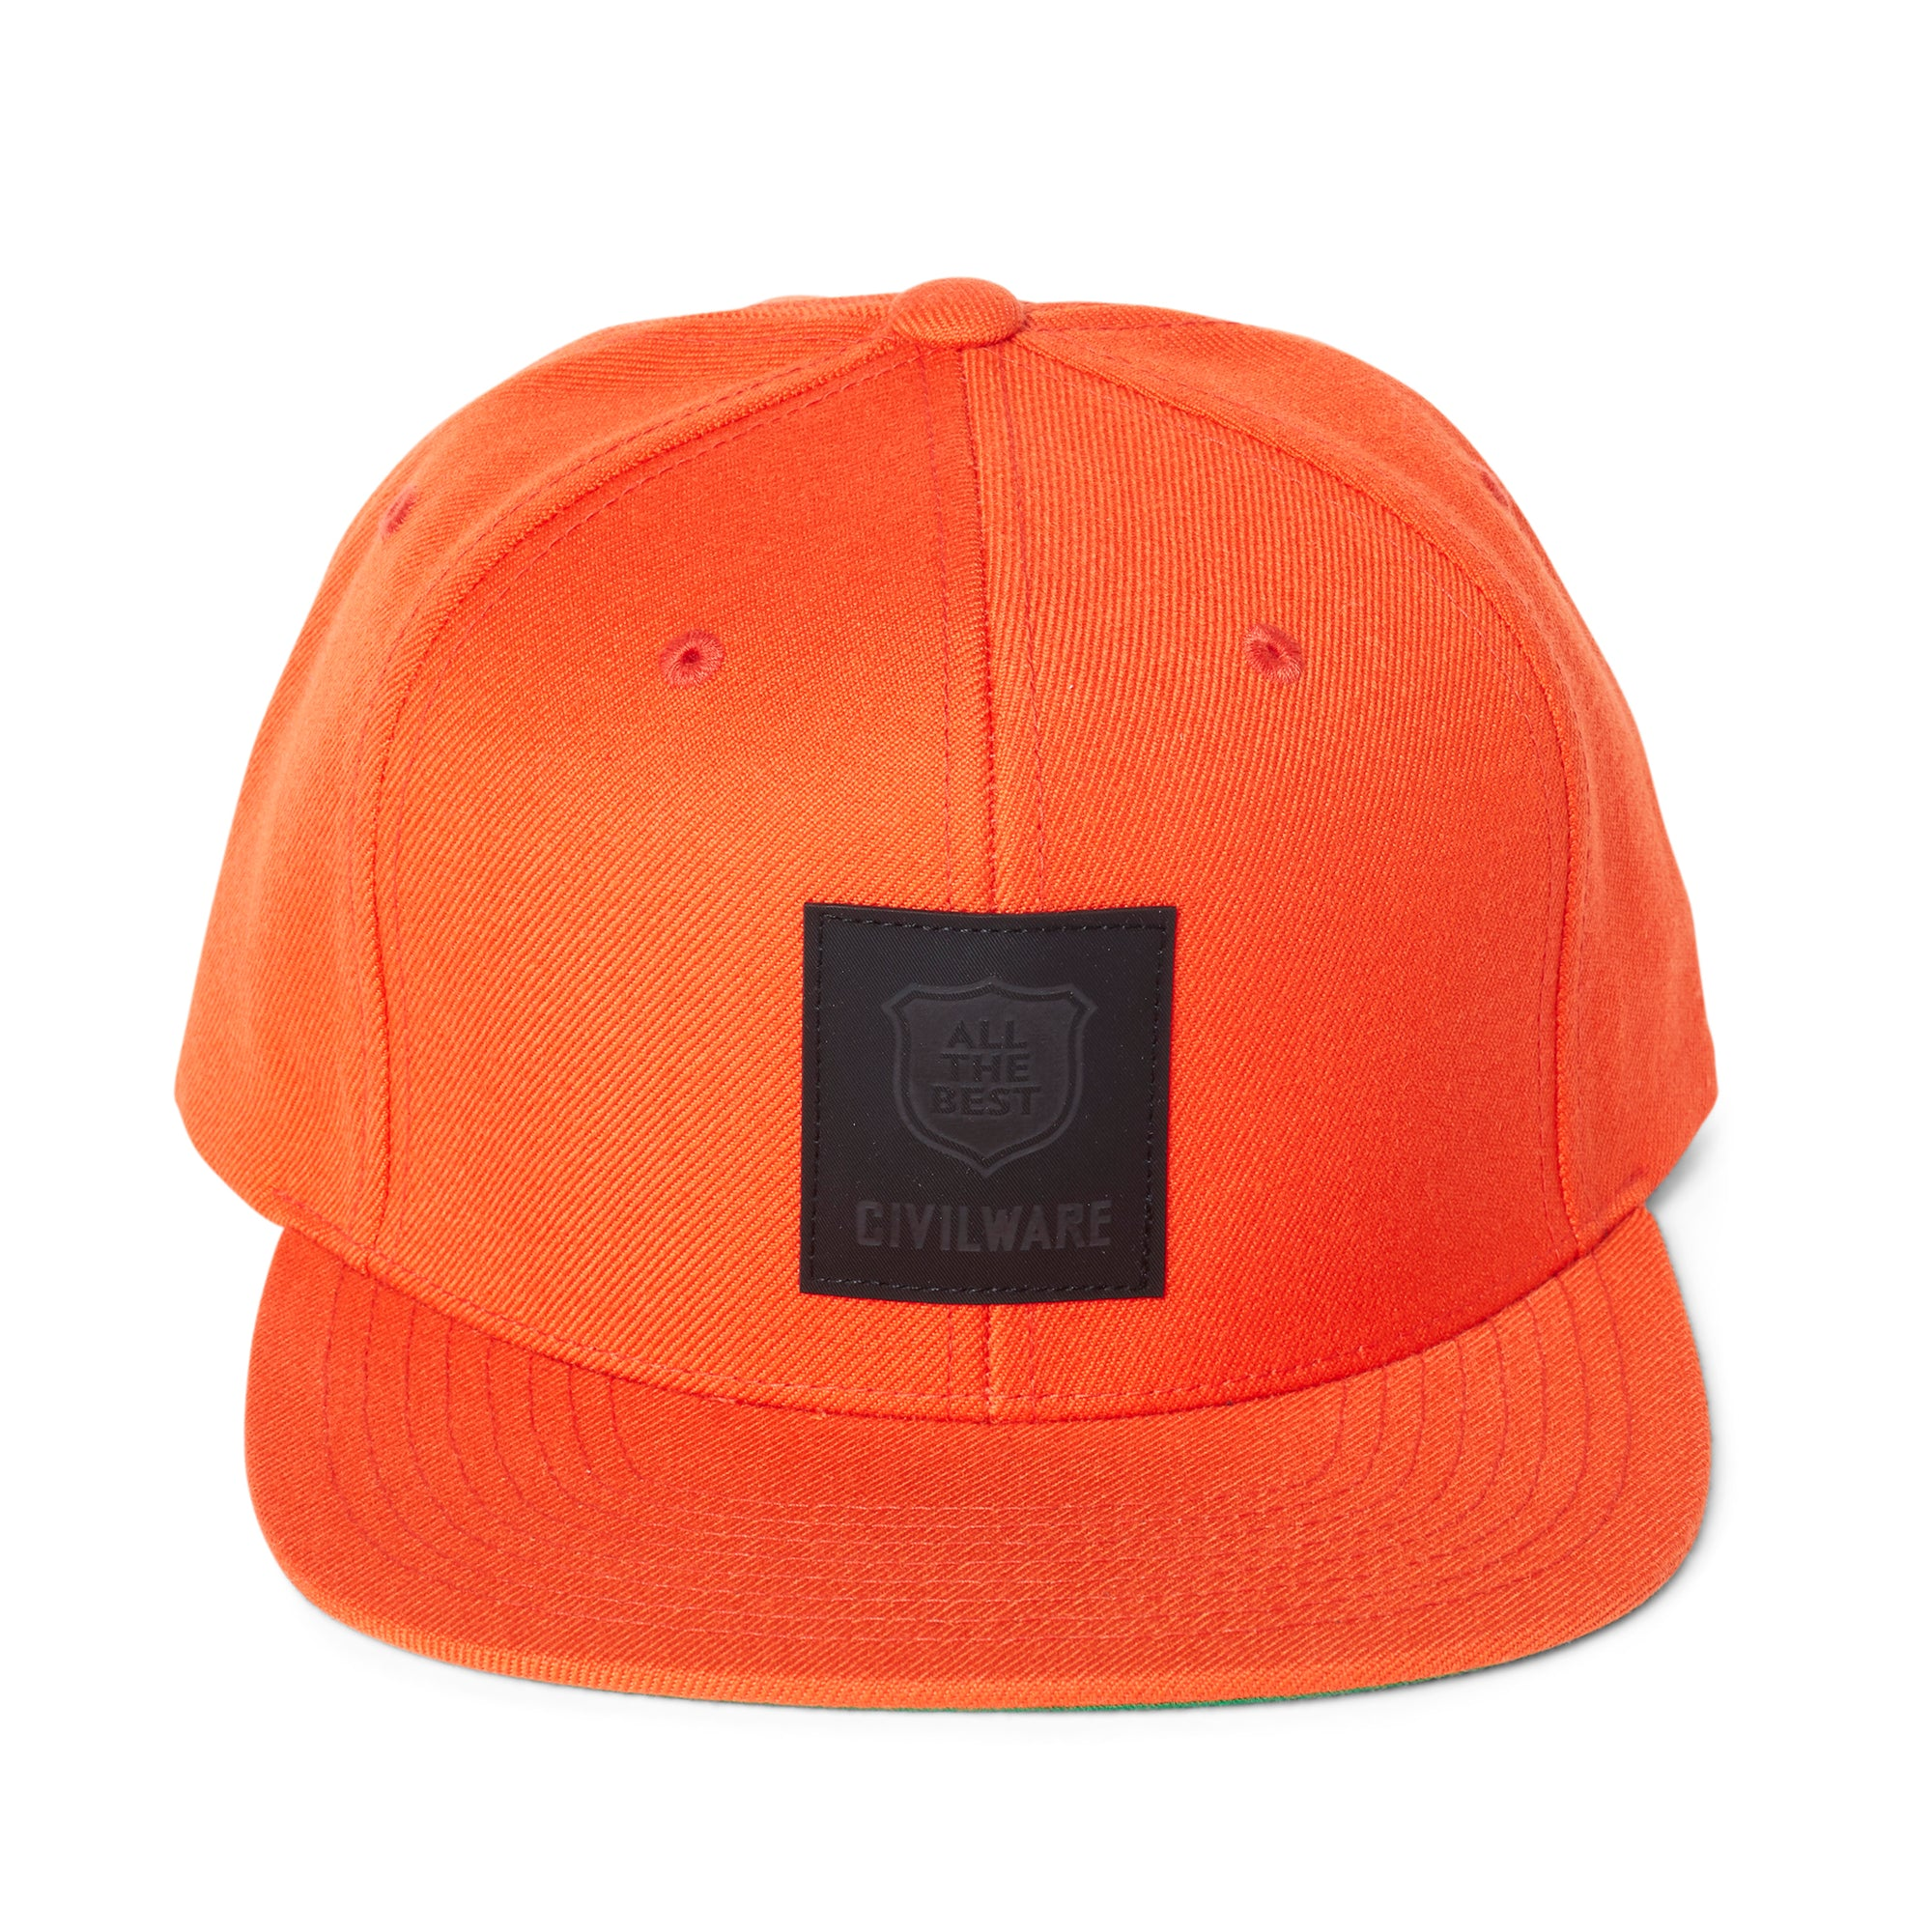 SERVICE HAT - ORANGE/BLACK